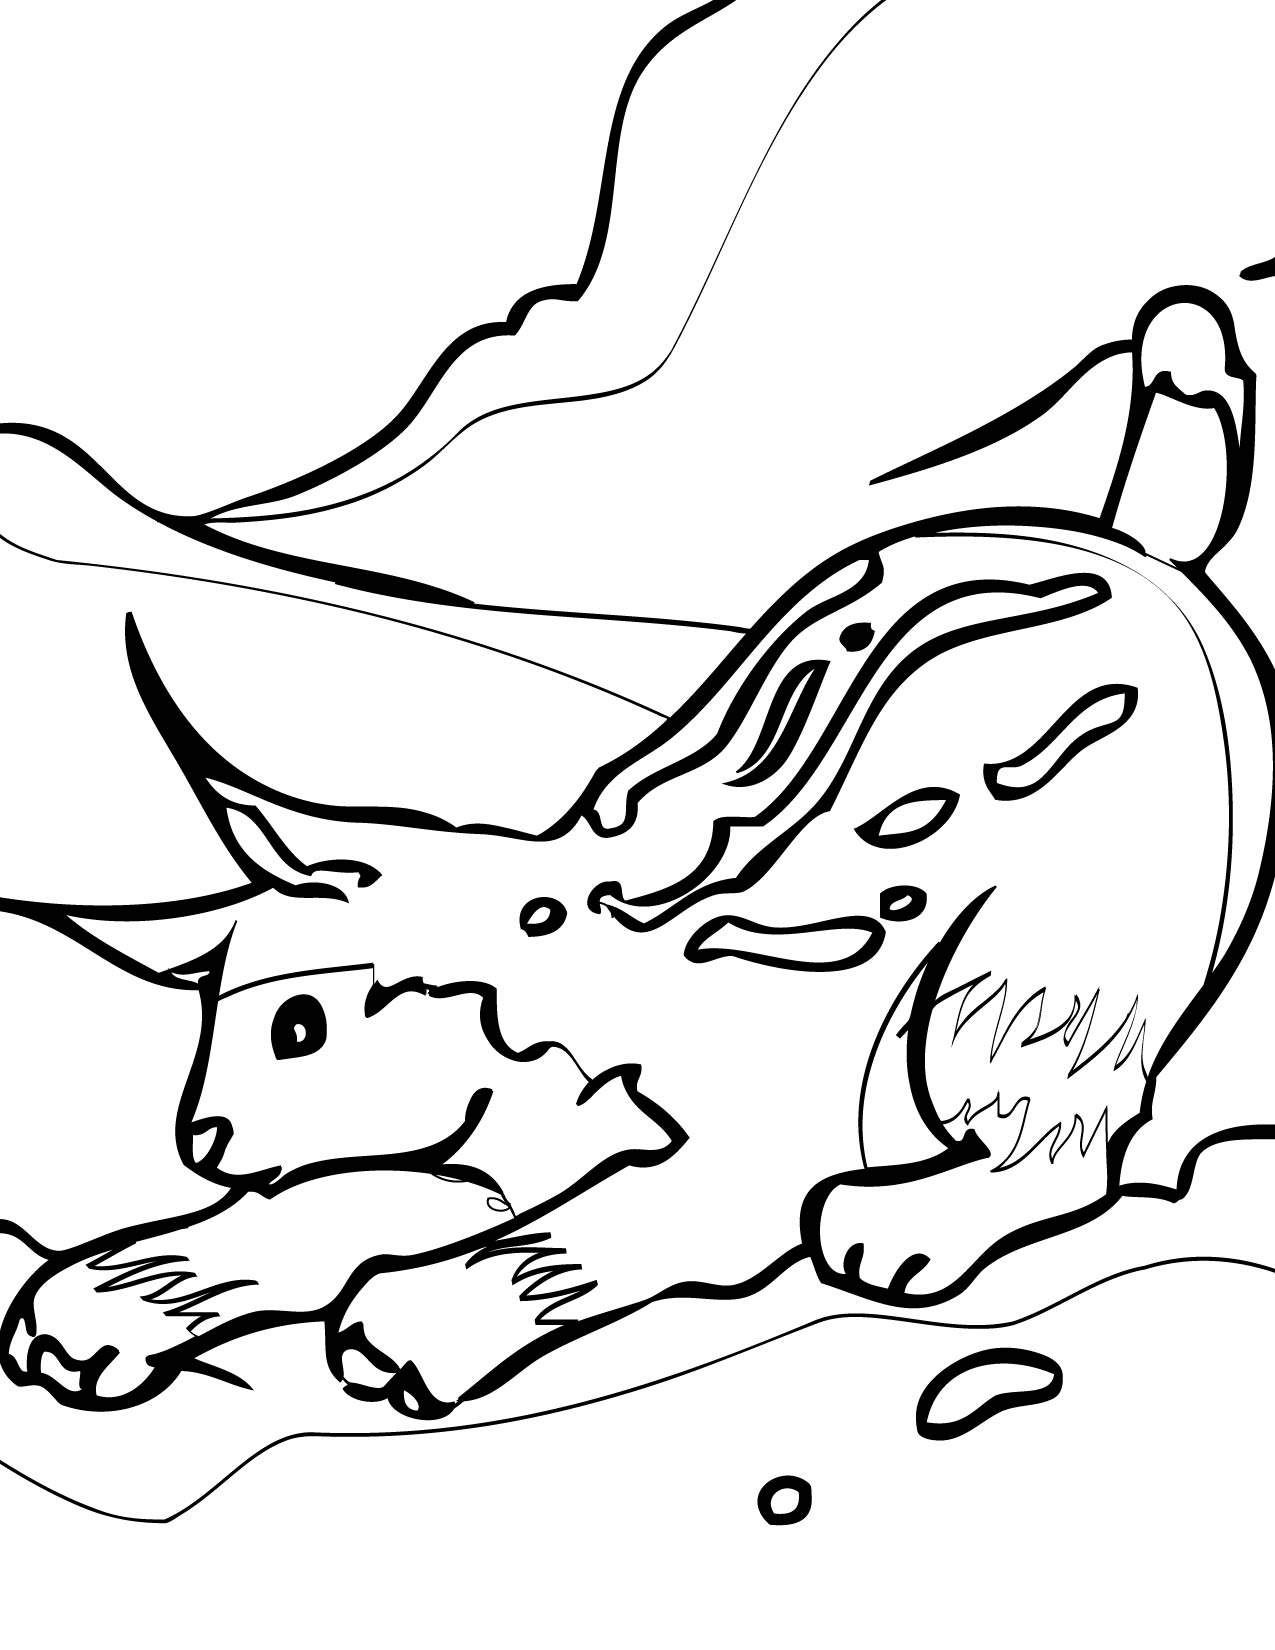 Polar animals coloring pages for kids - Lynx